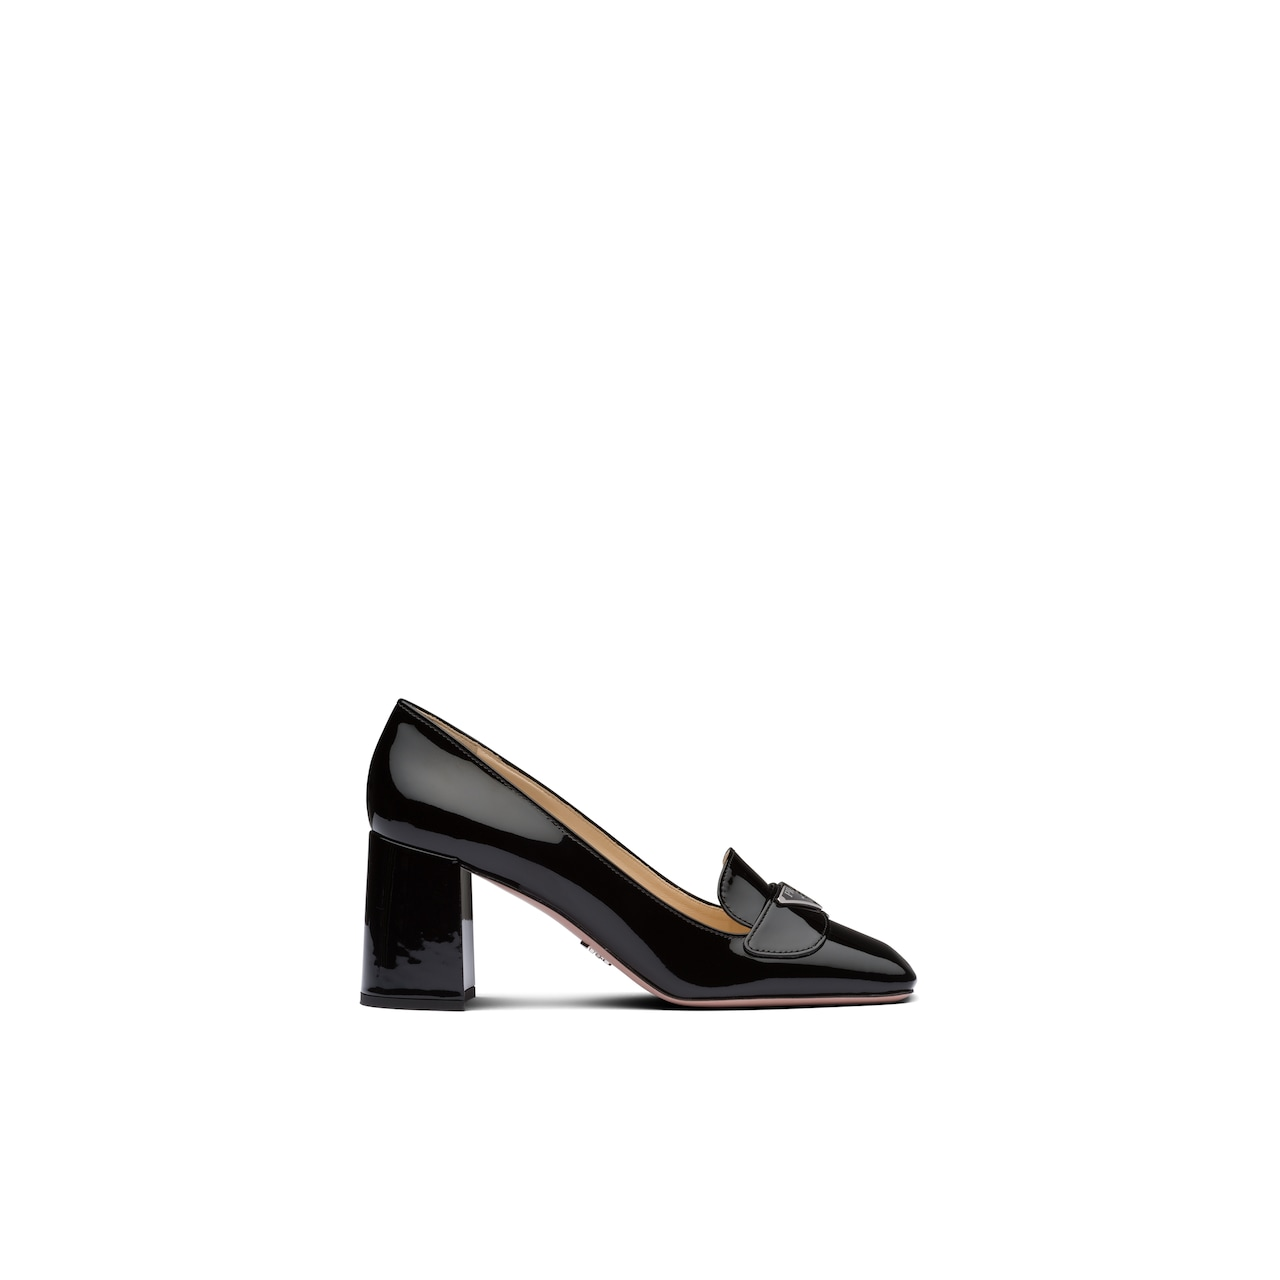 Prada Patent leather loafers 2